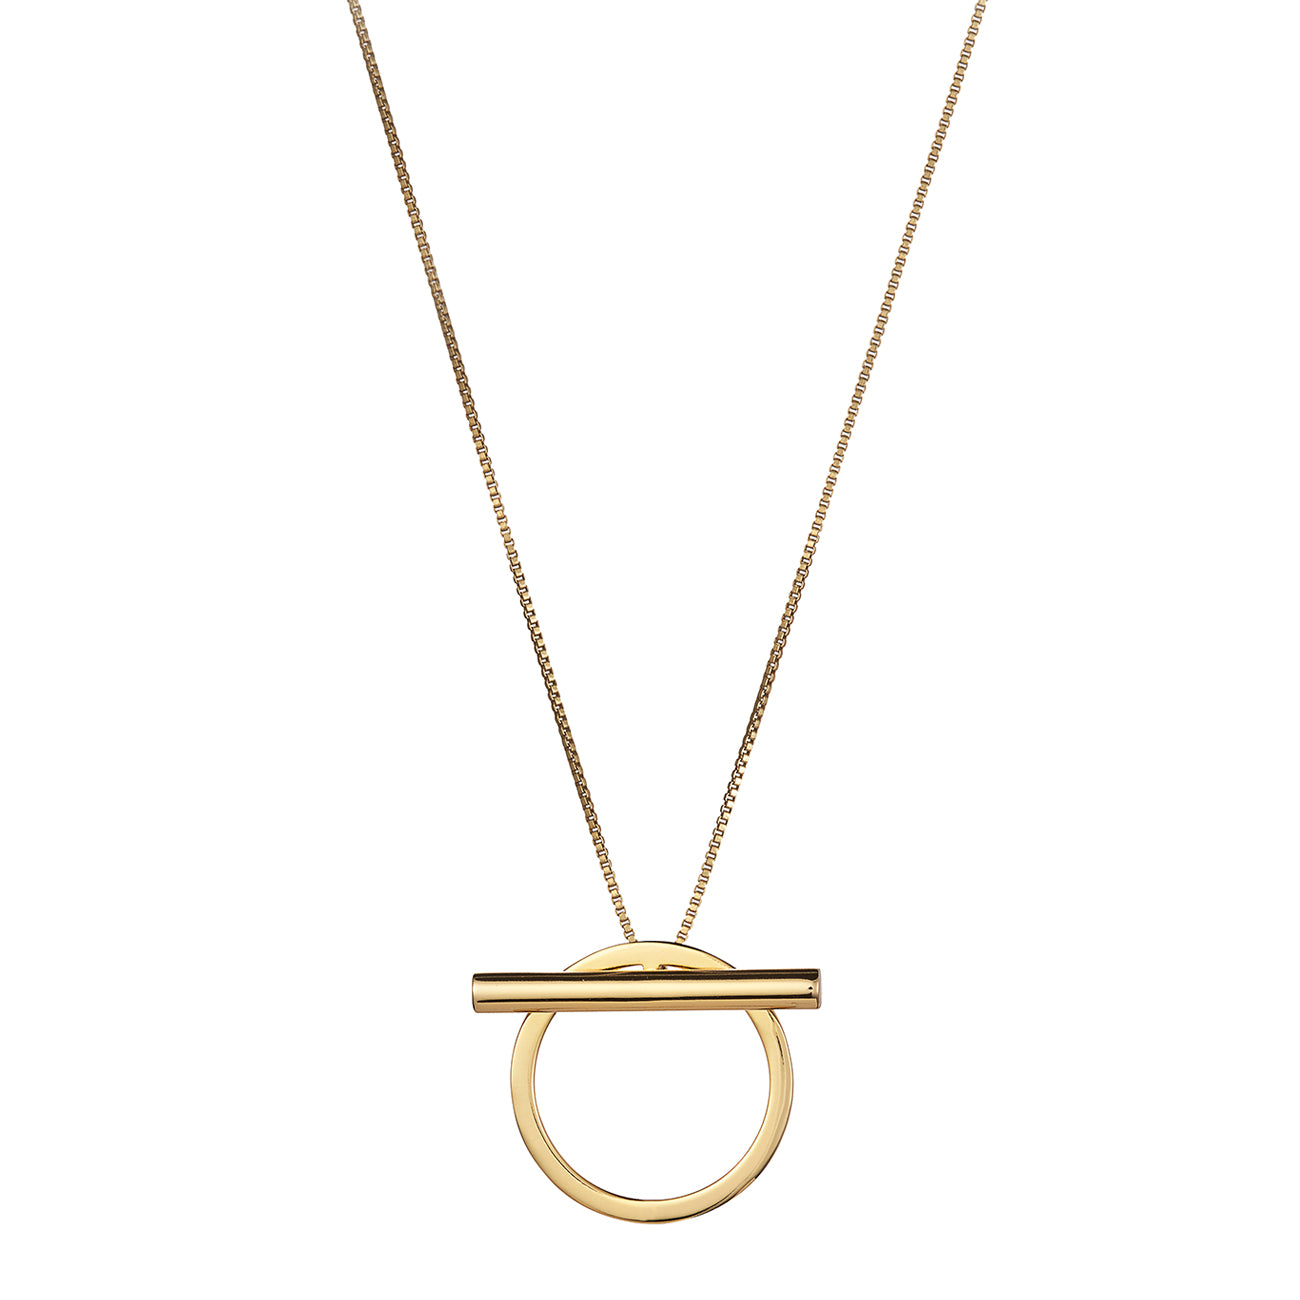 Trust Pendant by Jenny Bird in Gold